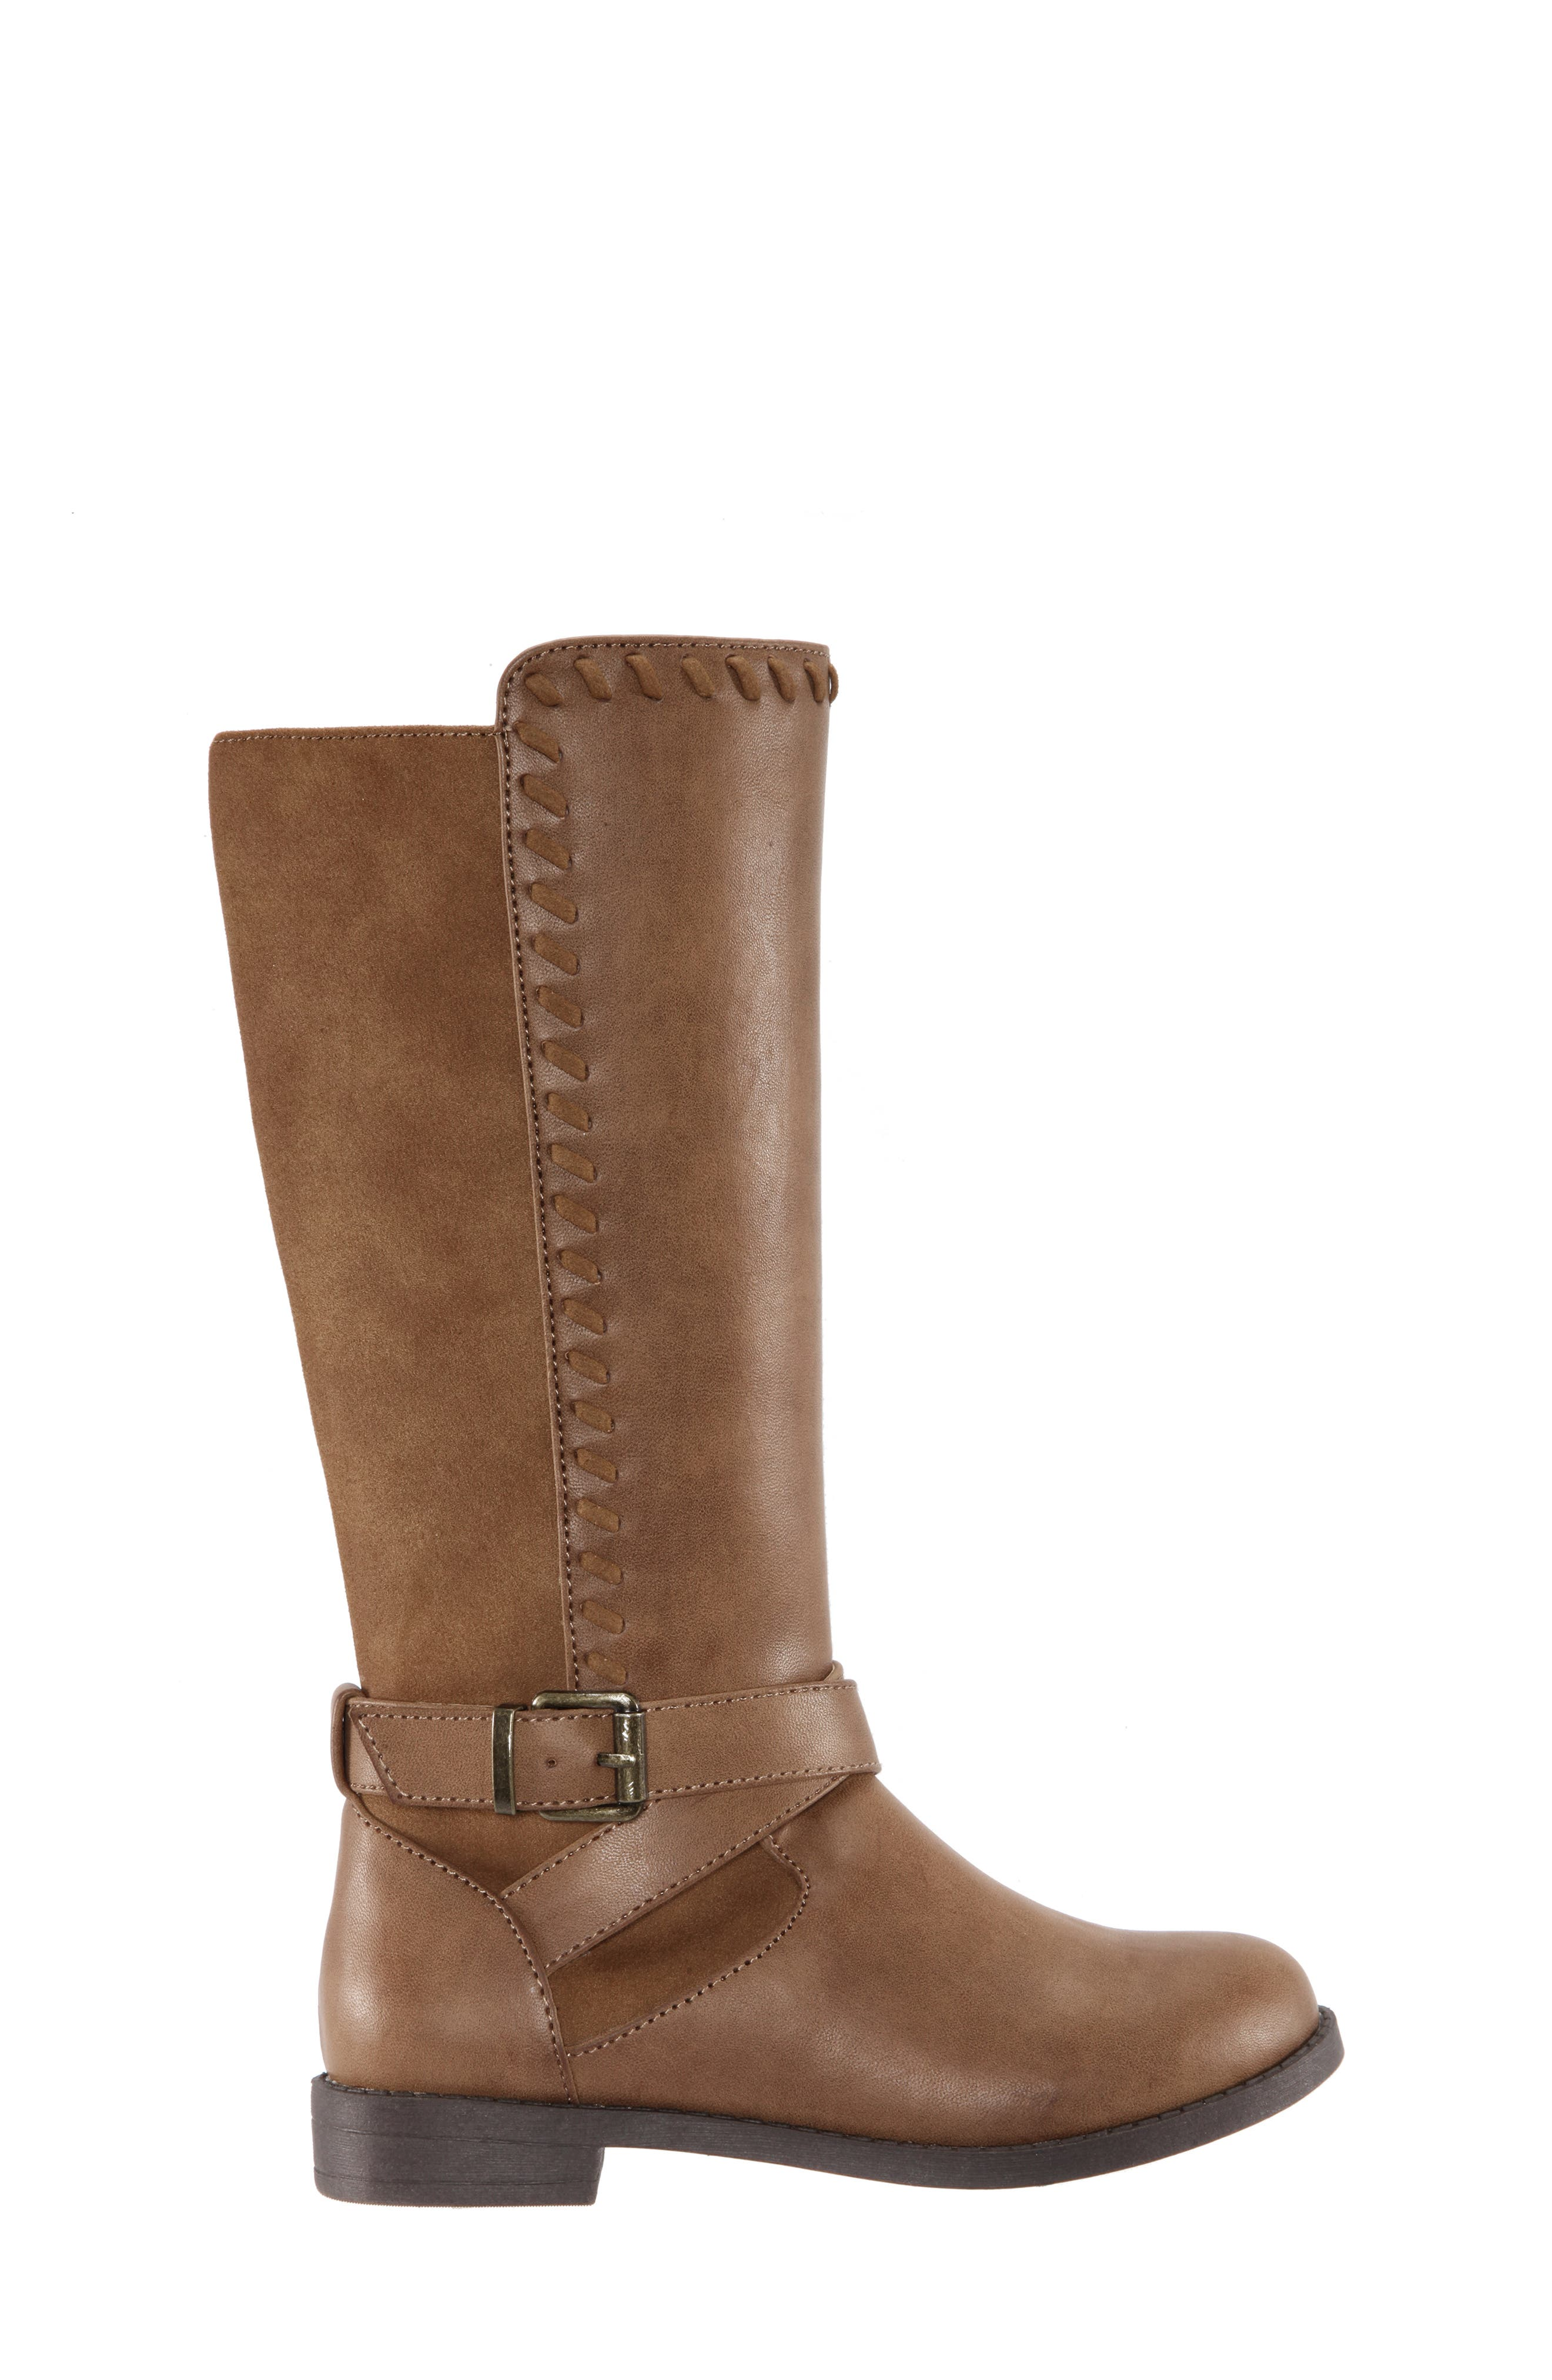 Jeanie Riding Boot,                             Alternate thumbnail 3, color,                             SADDLE BURNISHED